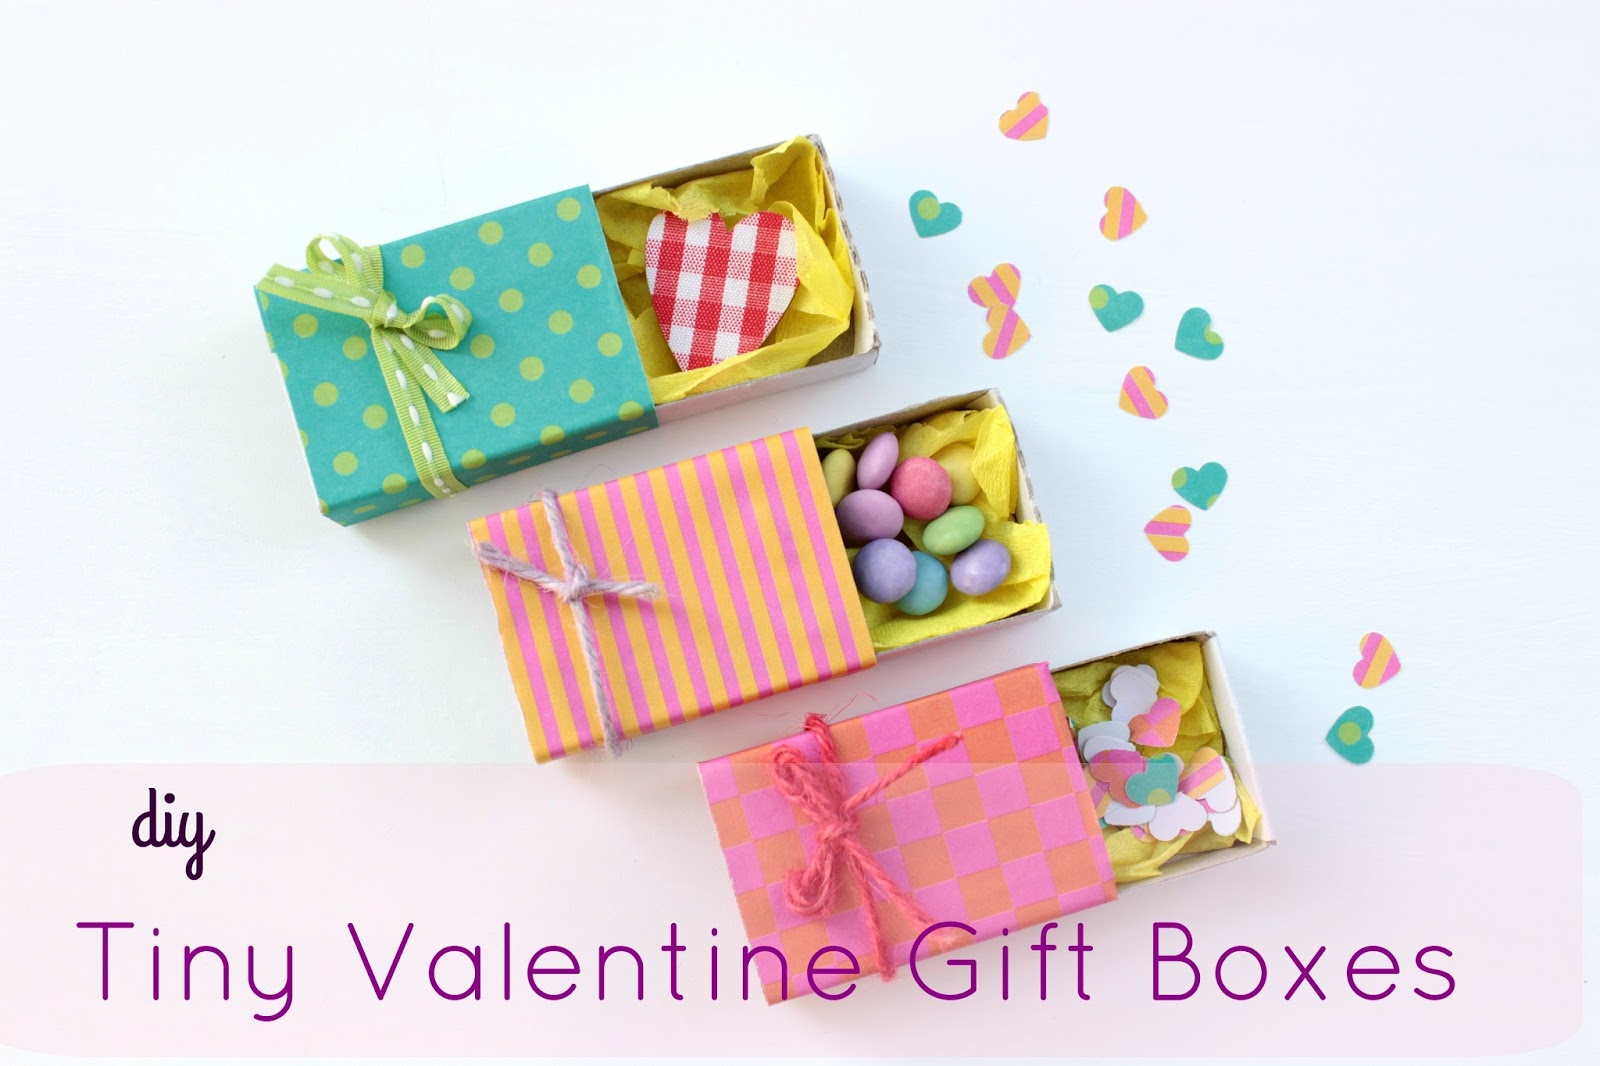 Diy Tiny Valentine Gift Boxes ευ ζήν Creations Bloglovin